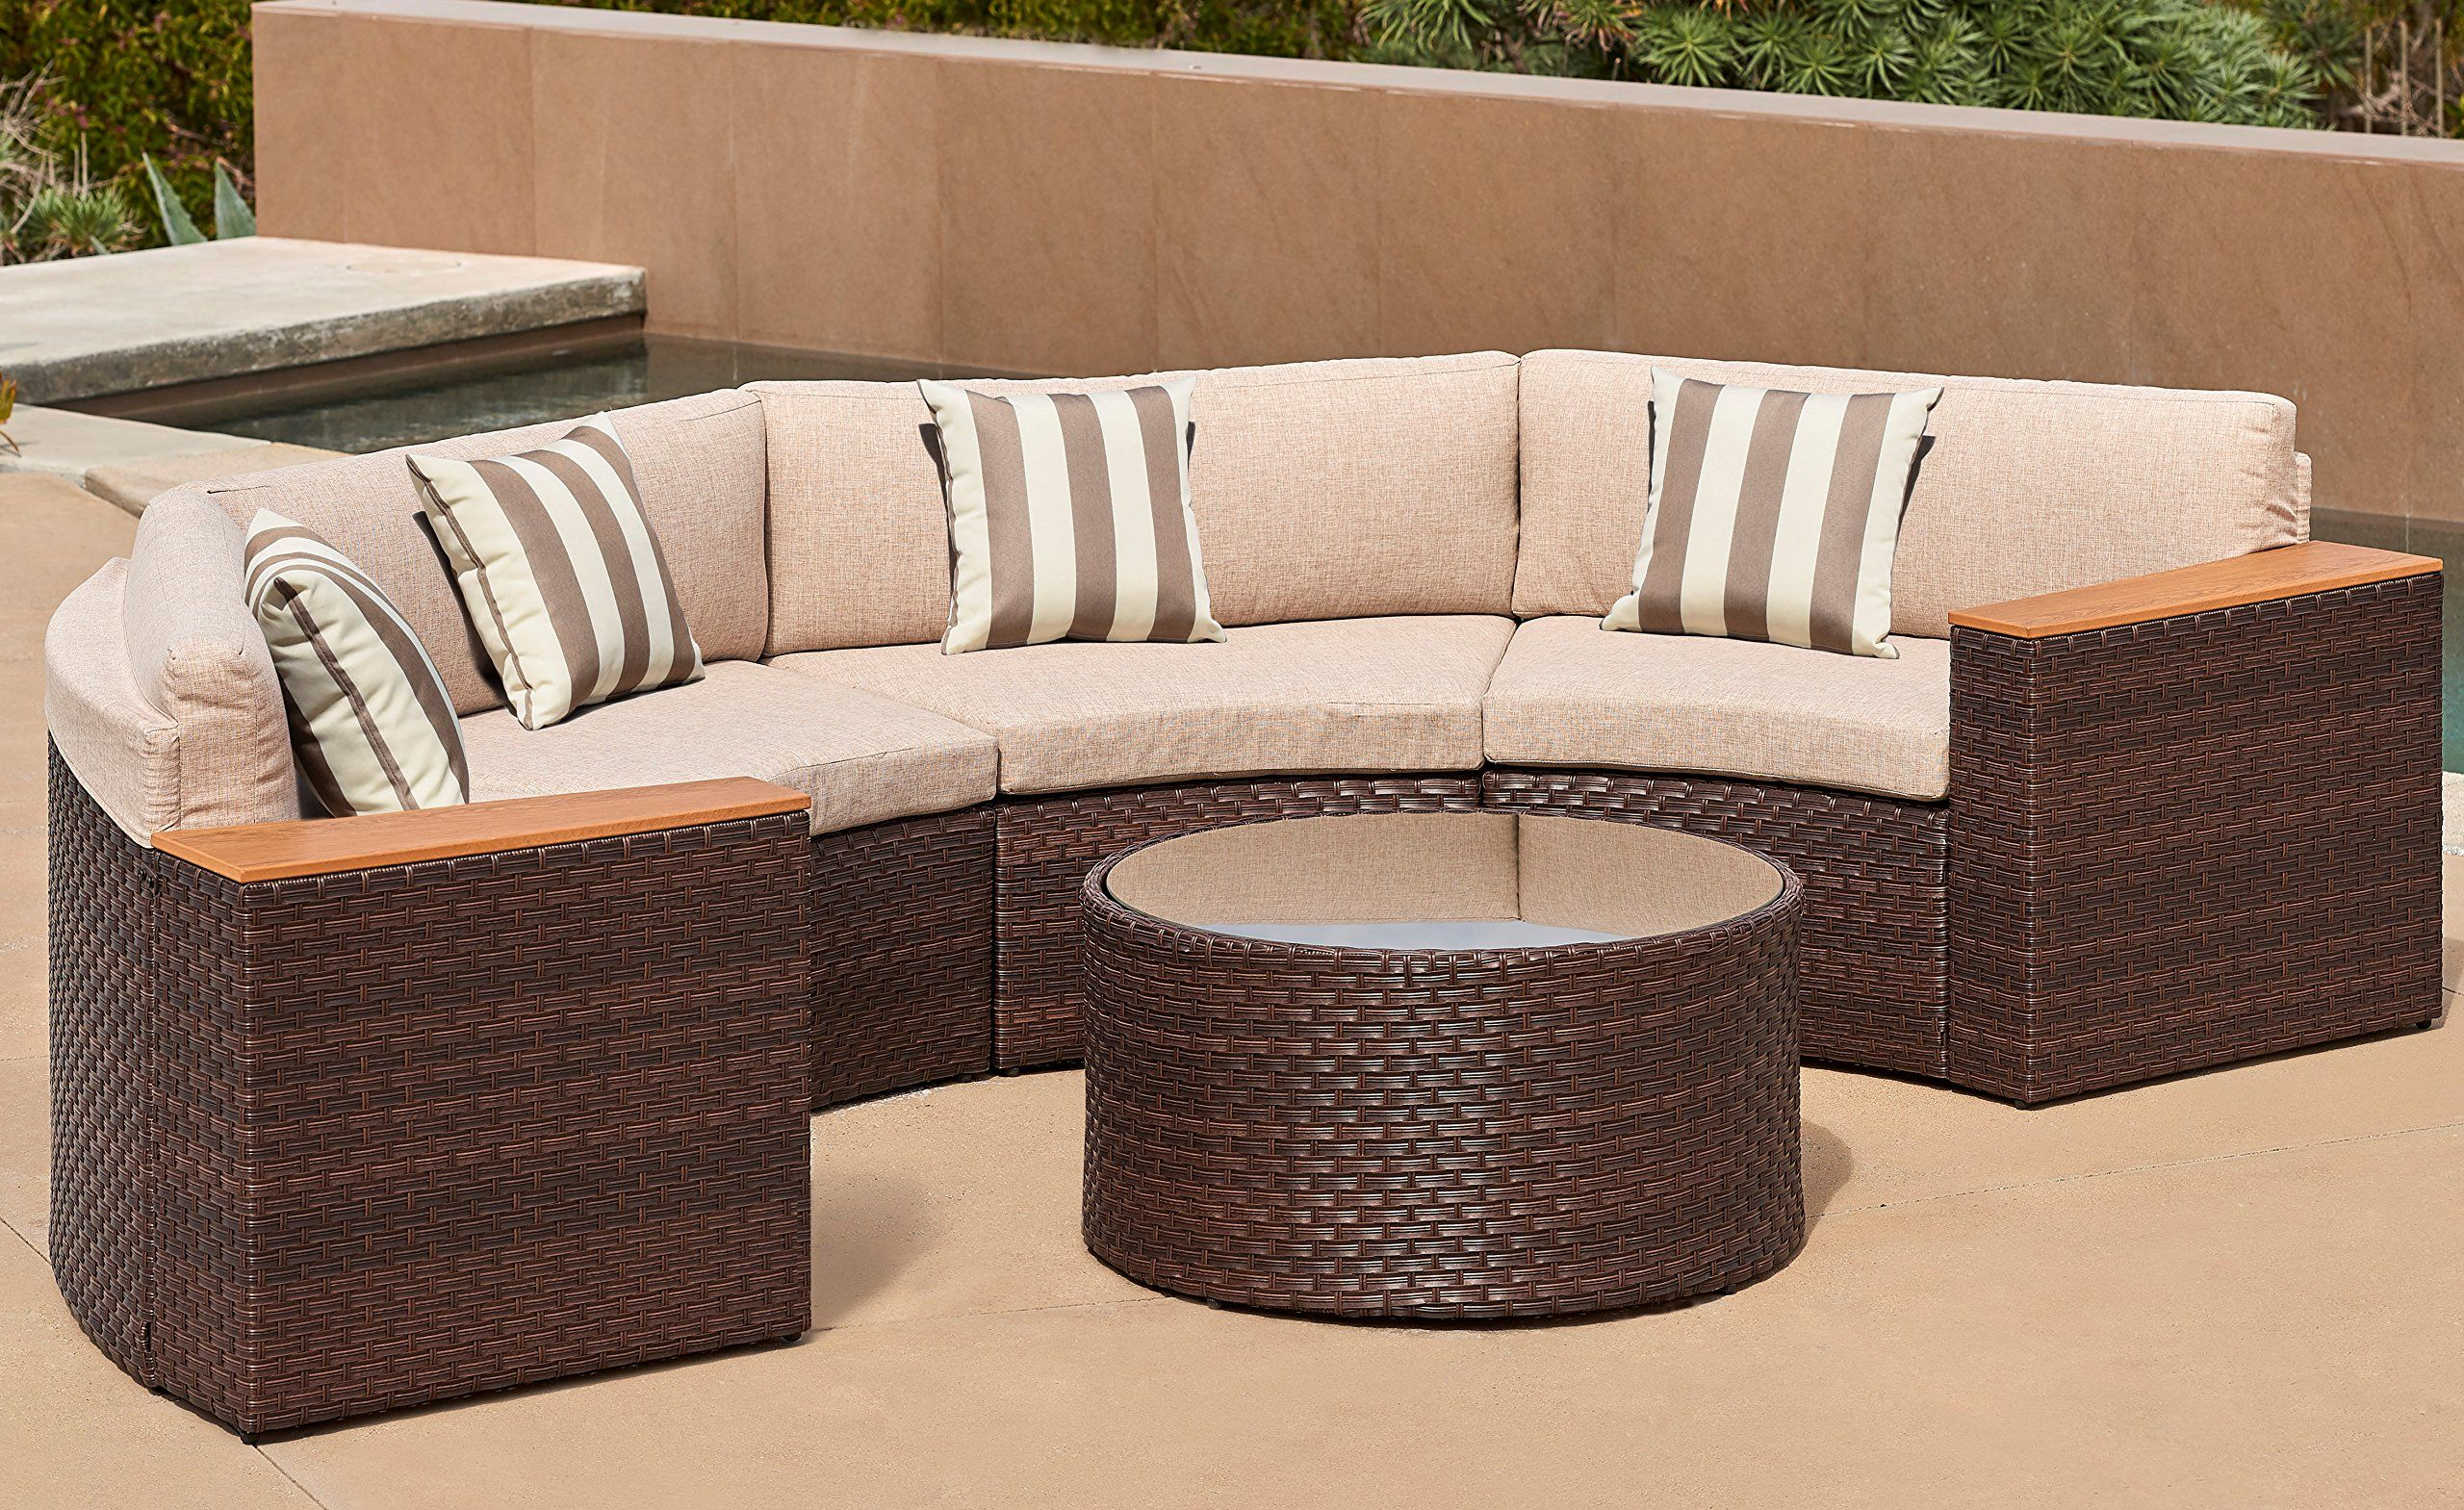 Solaura Outdoor 5piece Halfmoon Crescent Sectional Furniture Set All Weather Brown Wicker With Light Brown Waterproof Cush Sectional Furniture Sofa Wicker Sofa